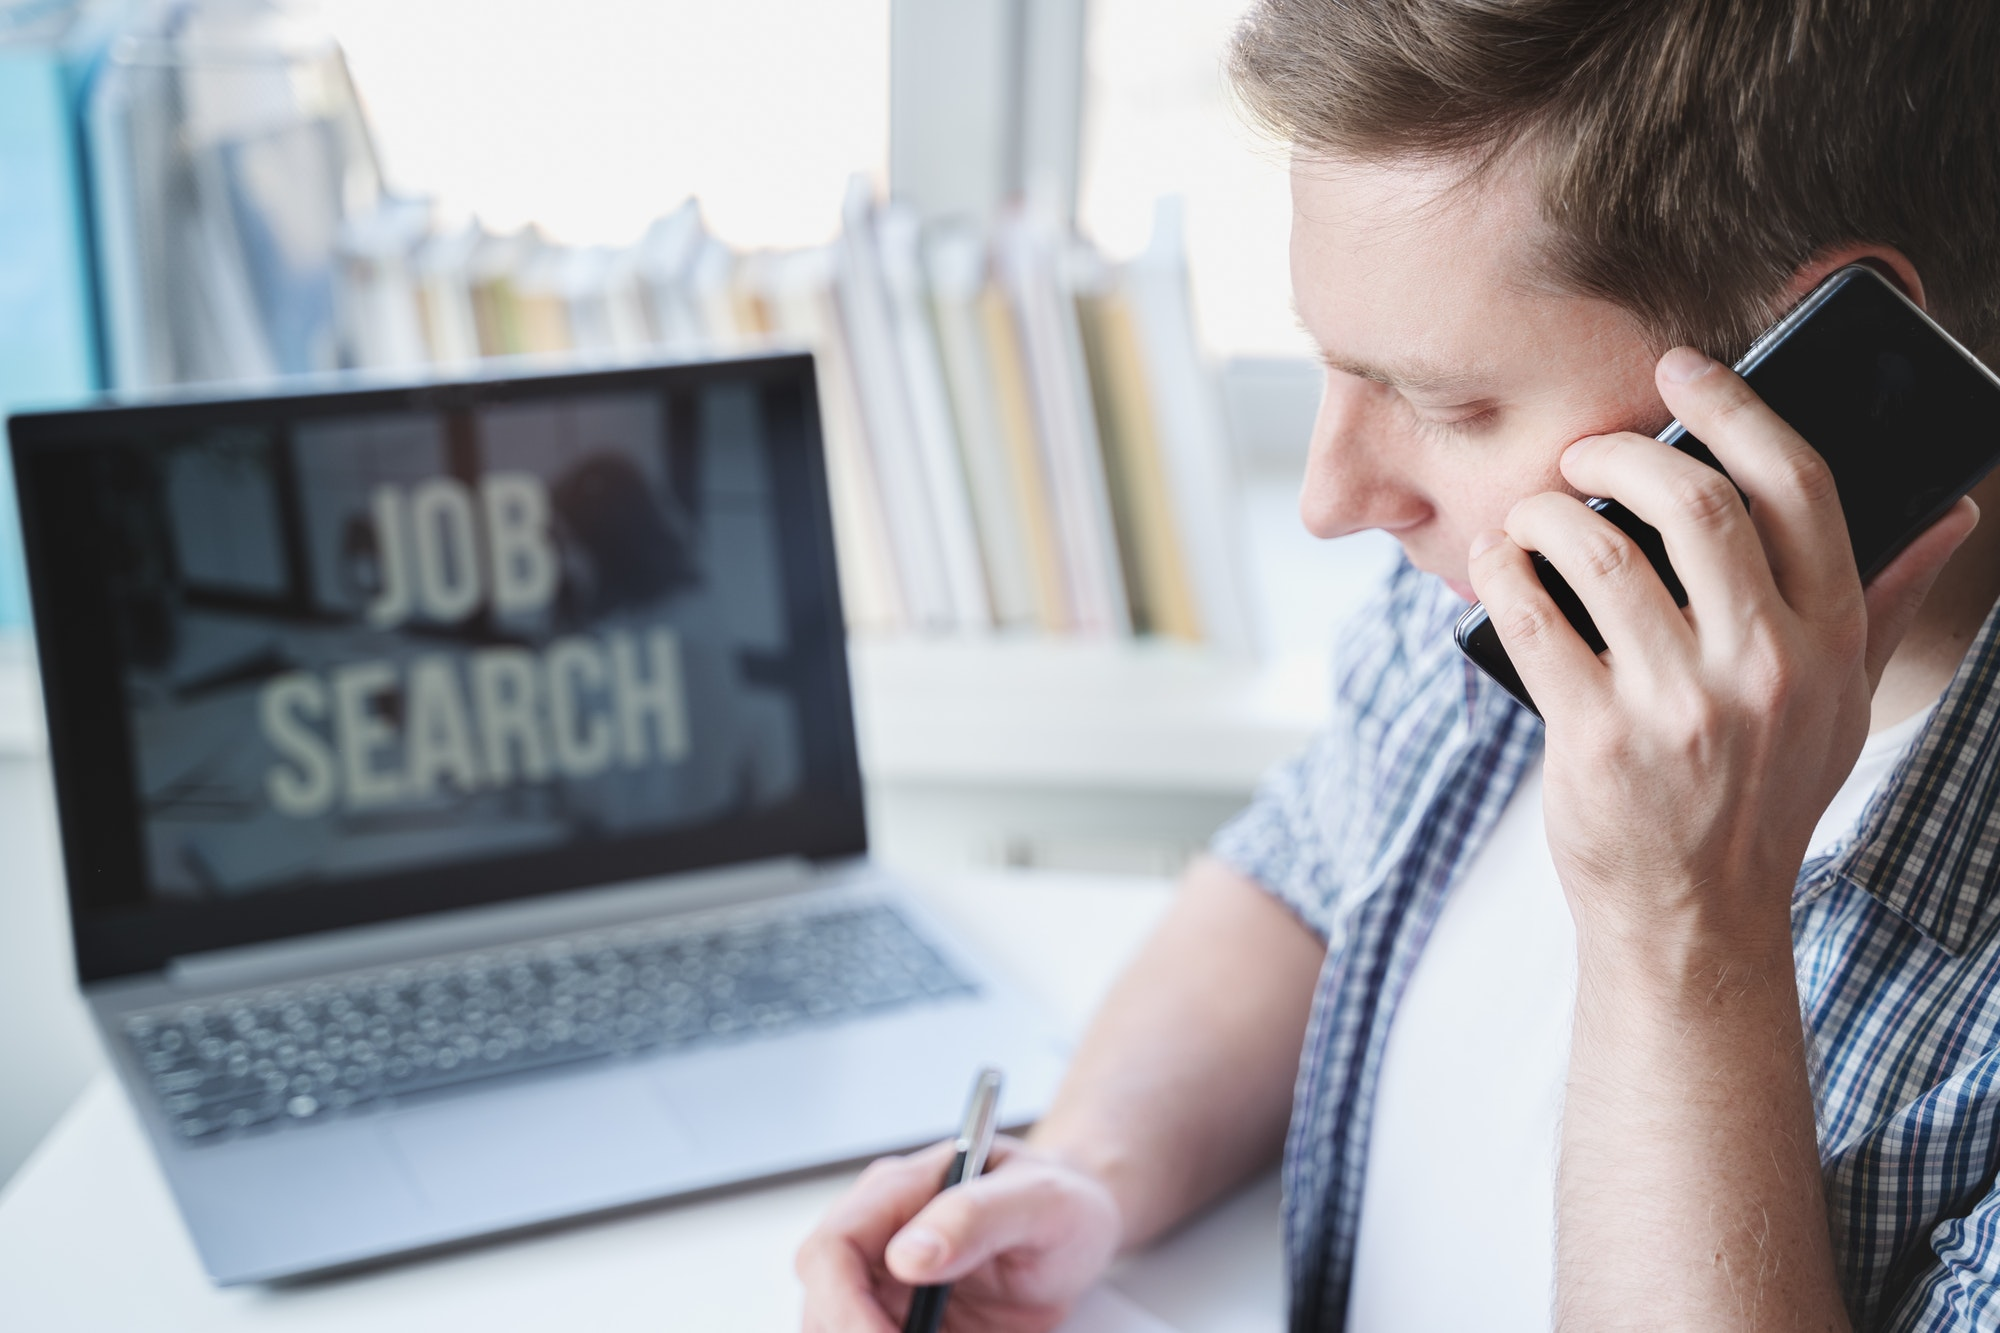 Remote job search. Man speaks on mobile phone, appoints interview for vacancy, writes meeting date